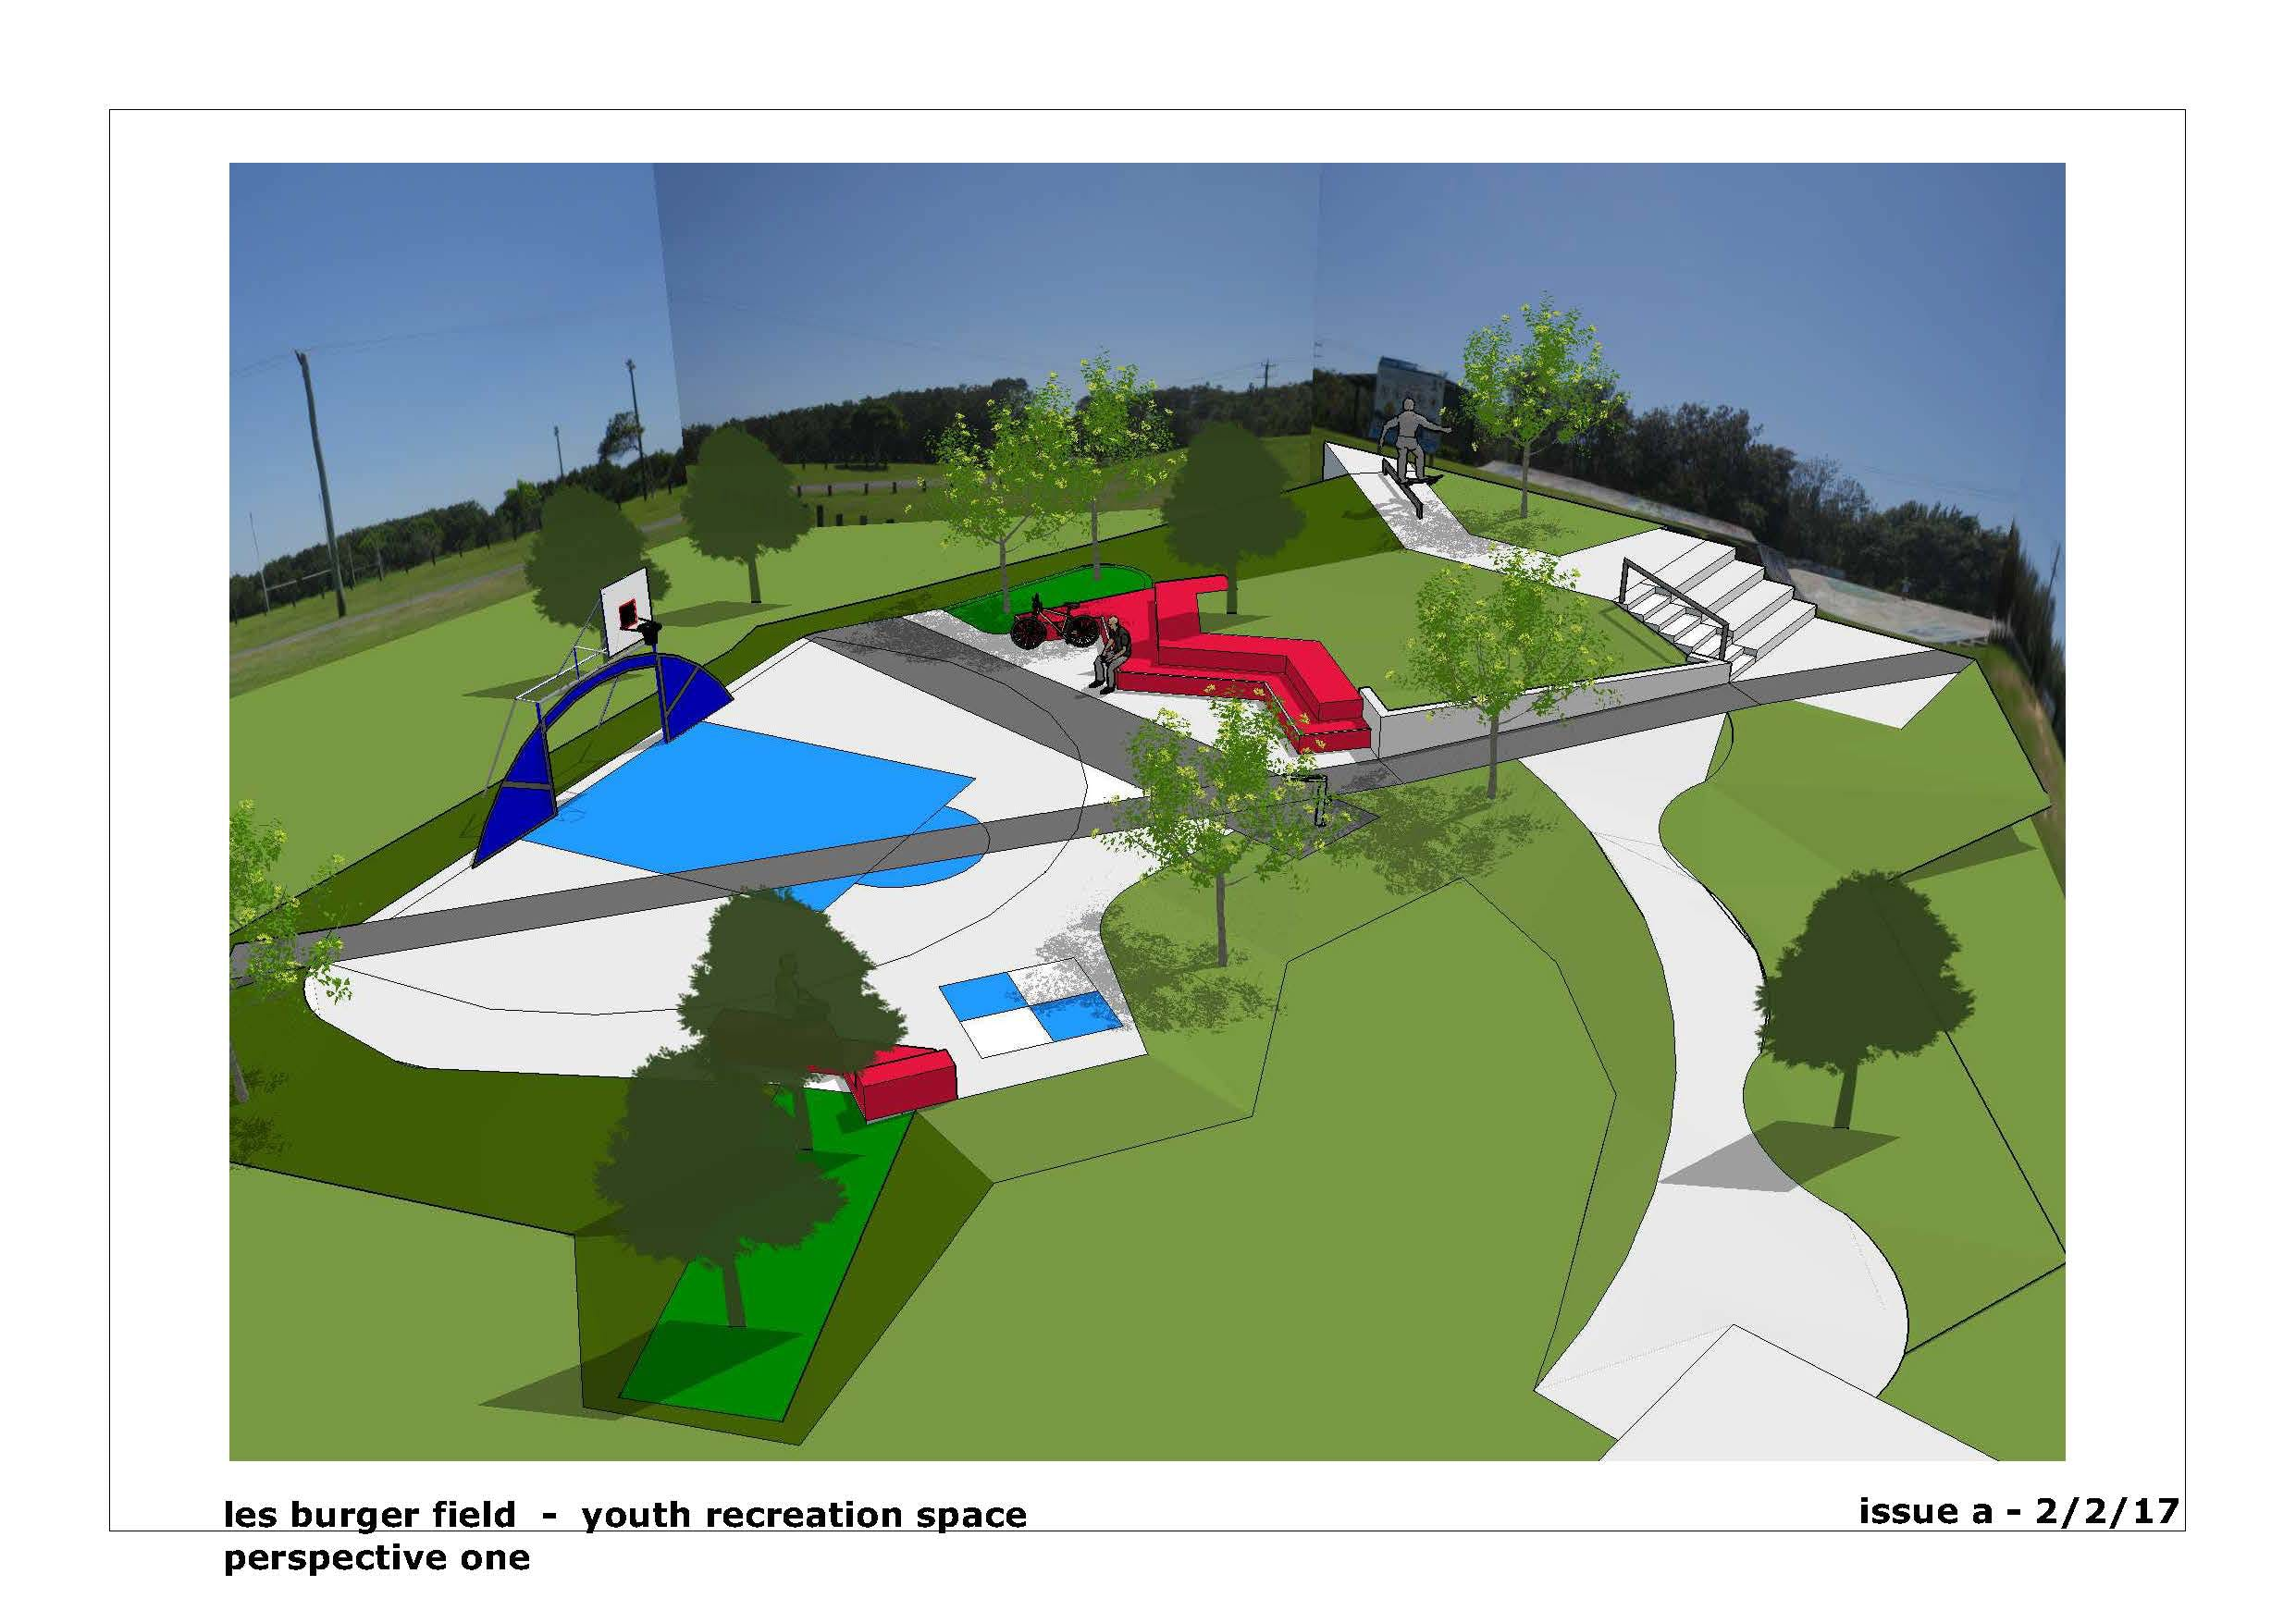 Artist's impression of the expanded youth recreation area - View 1